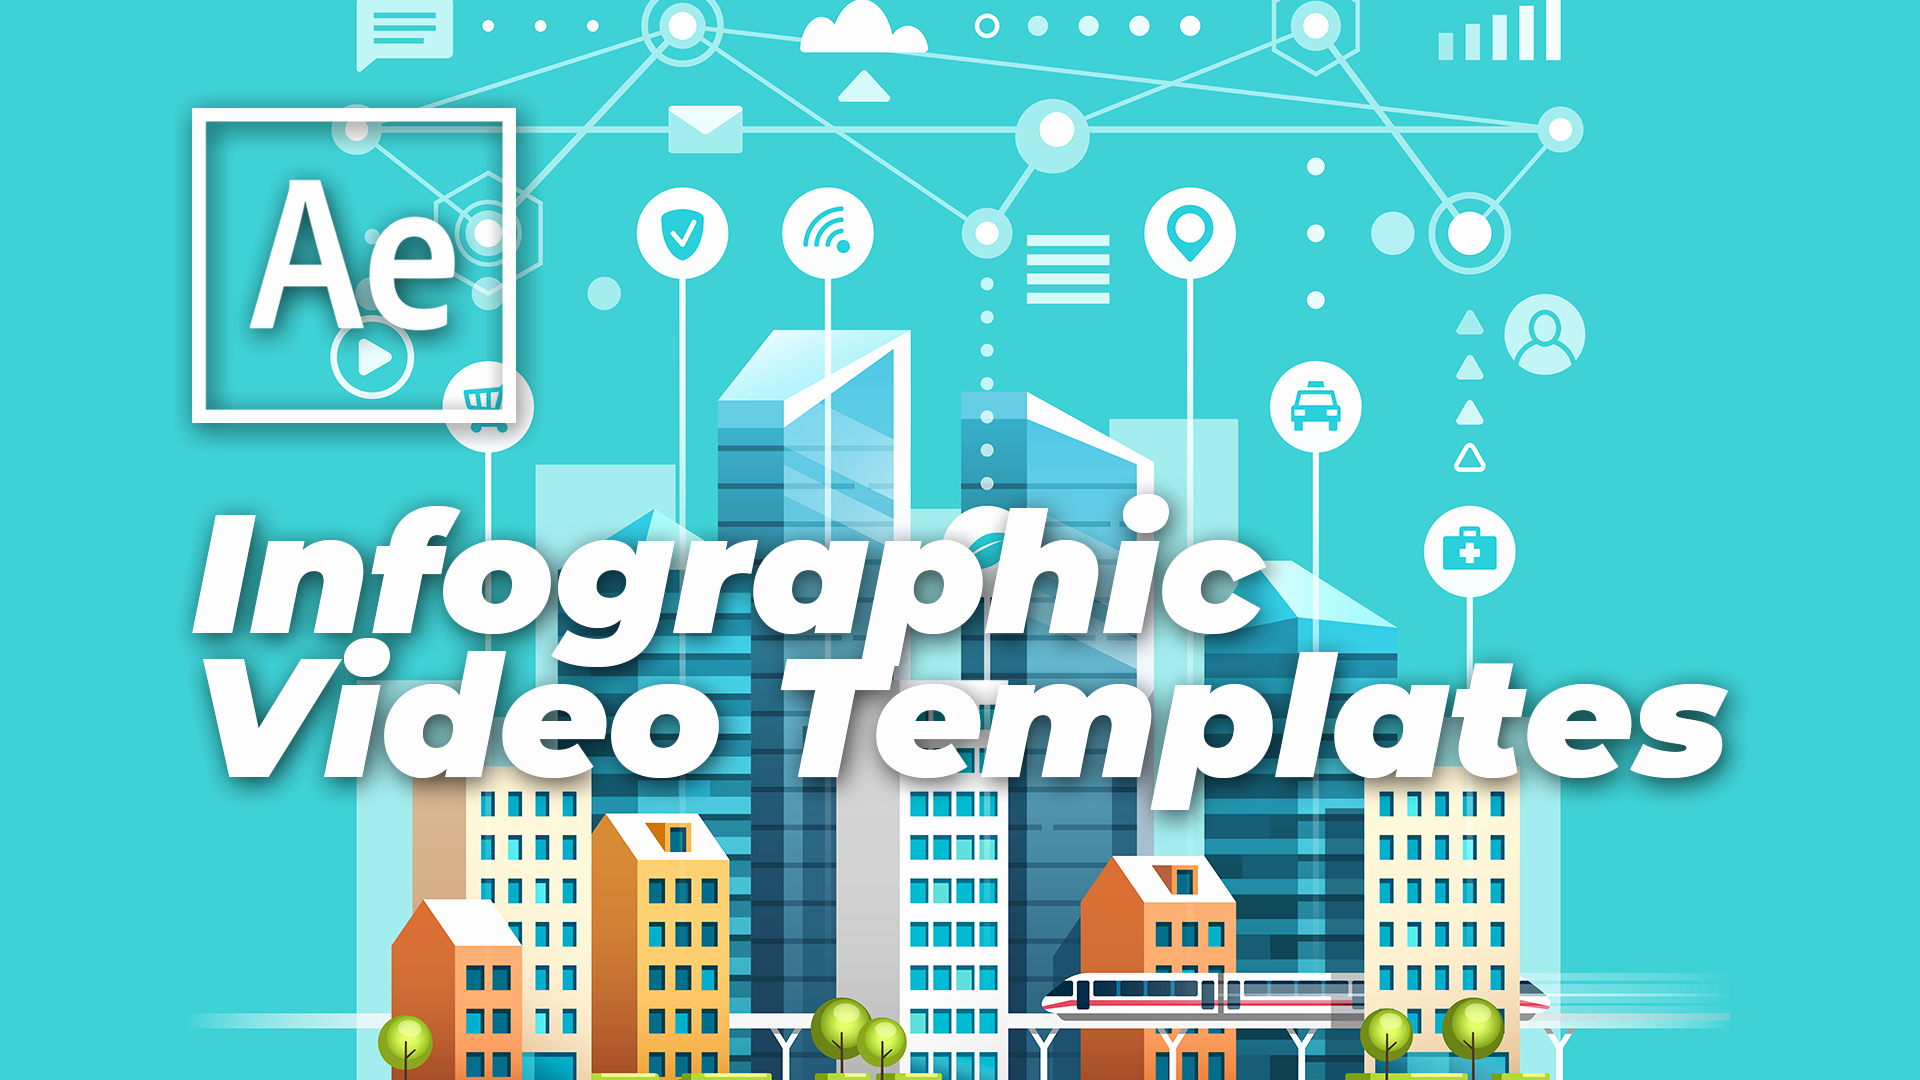 After Effects Infographic Template Beautiful top 10 Infographic Video Templates for after Effects Envato